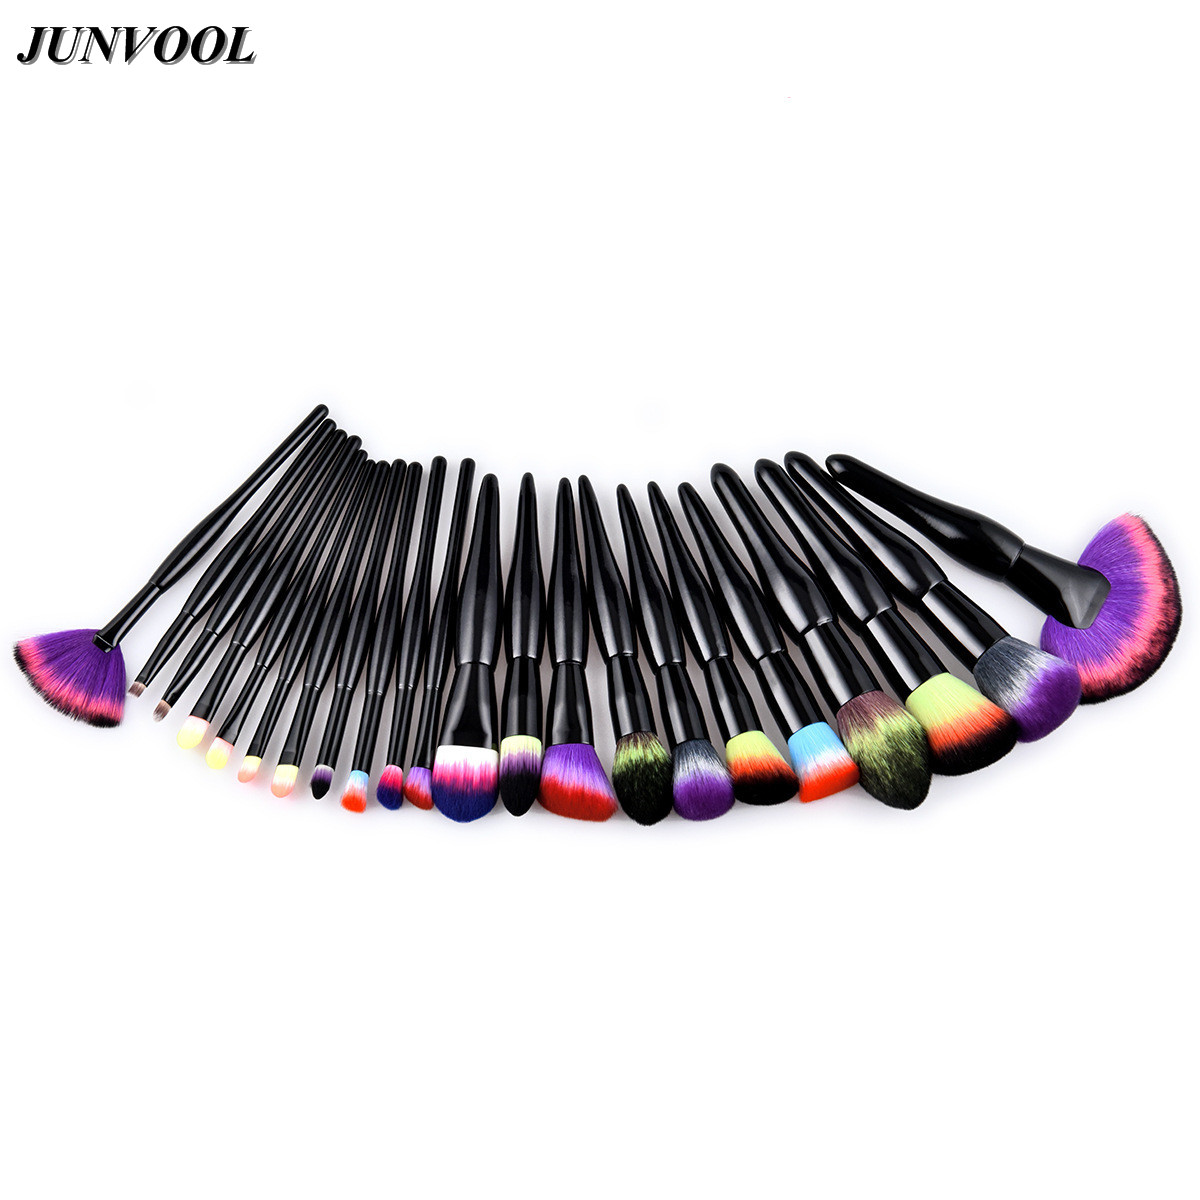 22pcs Black Makeup Brushes Set Eyeshadow Powder Foundation Make Up Fan Brush Kit Rainbow Hair Contour Face Blend Cosmetic Tools menu чаша black contour